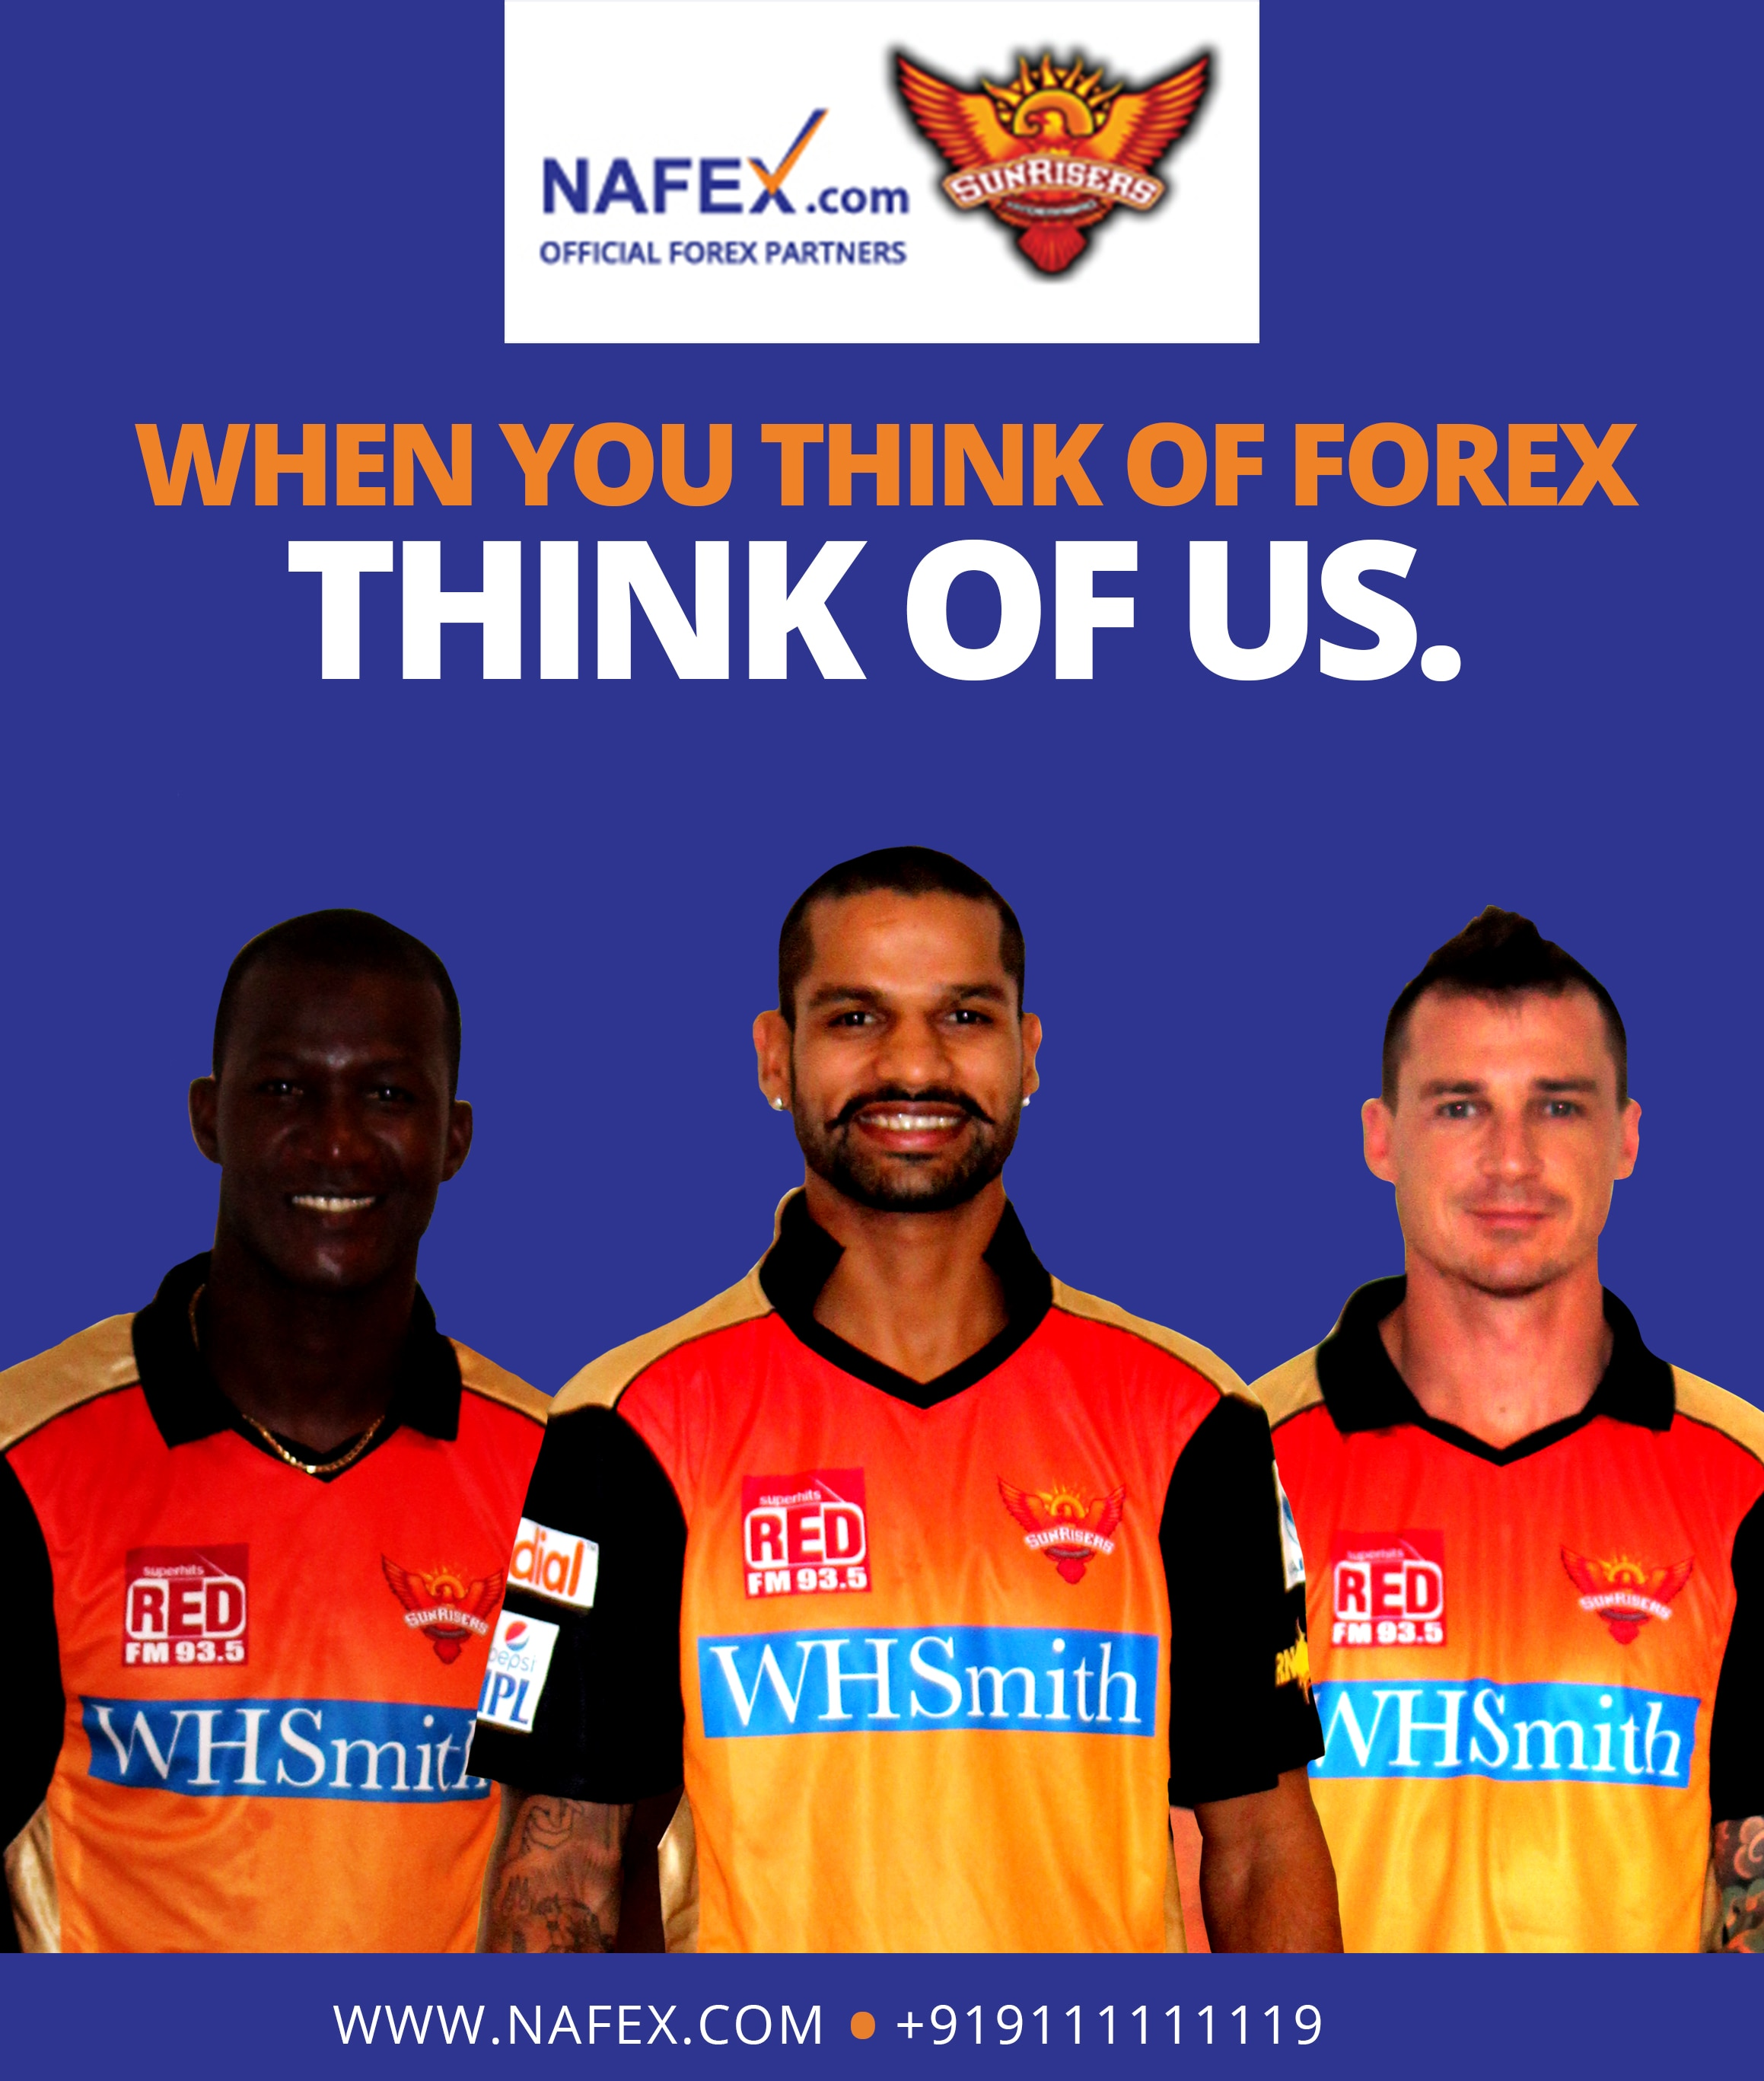 Nafex - Lake Gardens Foreign Currency Exchange Dealers Agents Lake Gardens, Online Travellers Cheque & Forex Prepaid Card